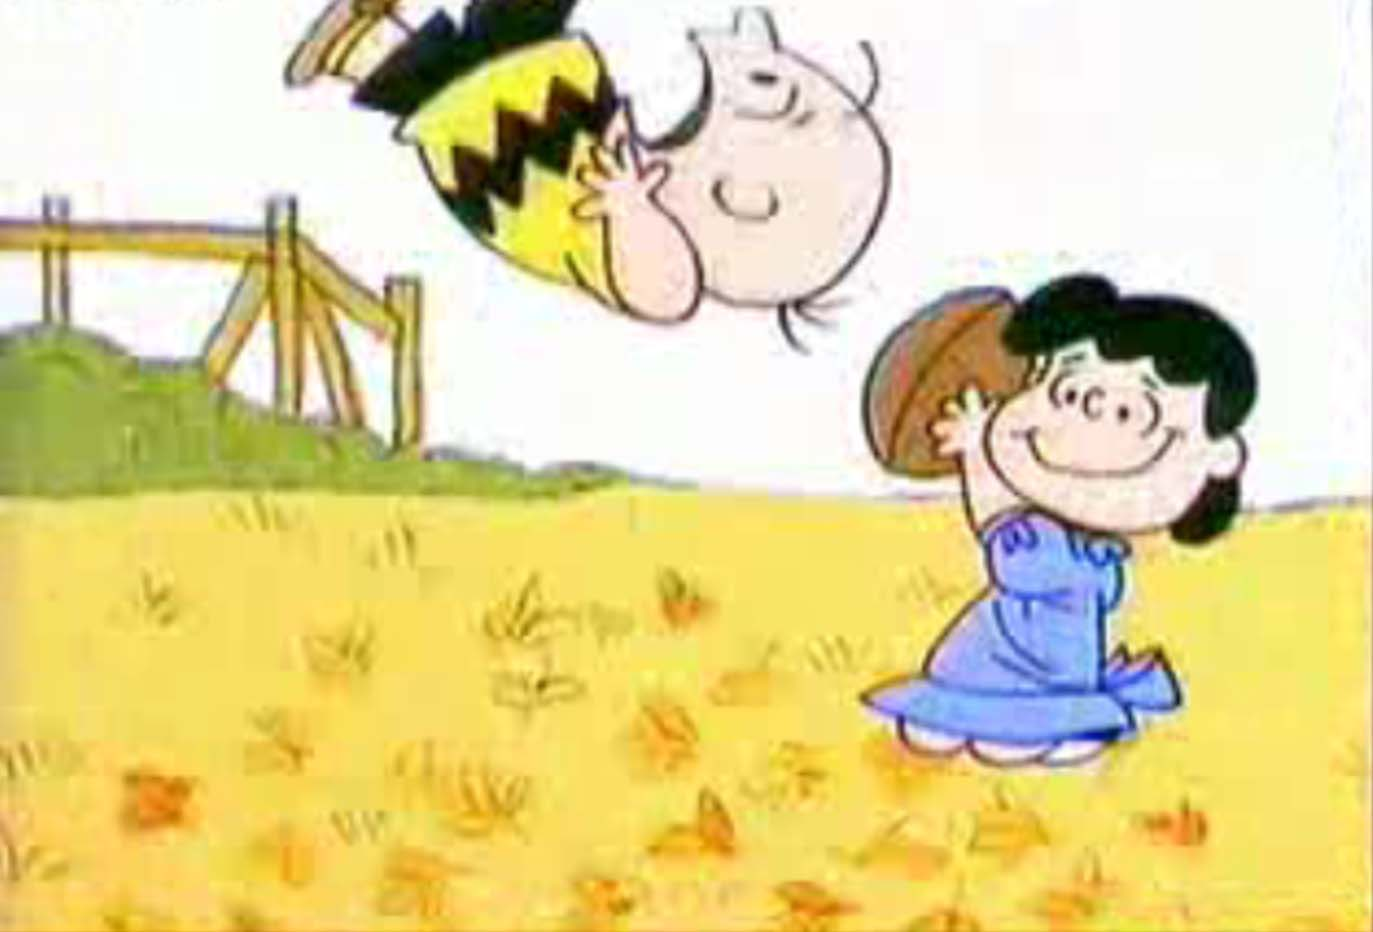 animated Lucy from charlie Brownlucy